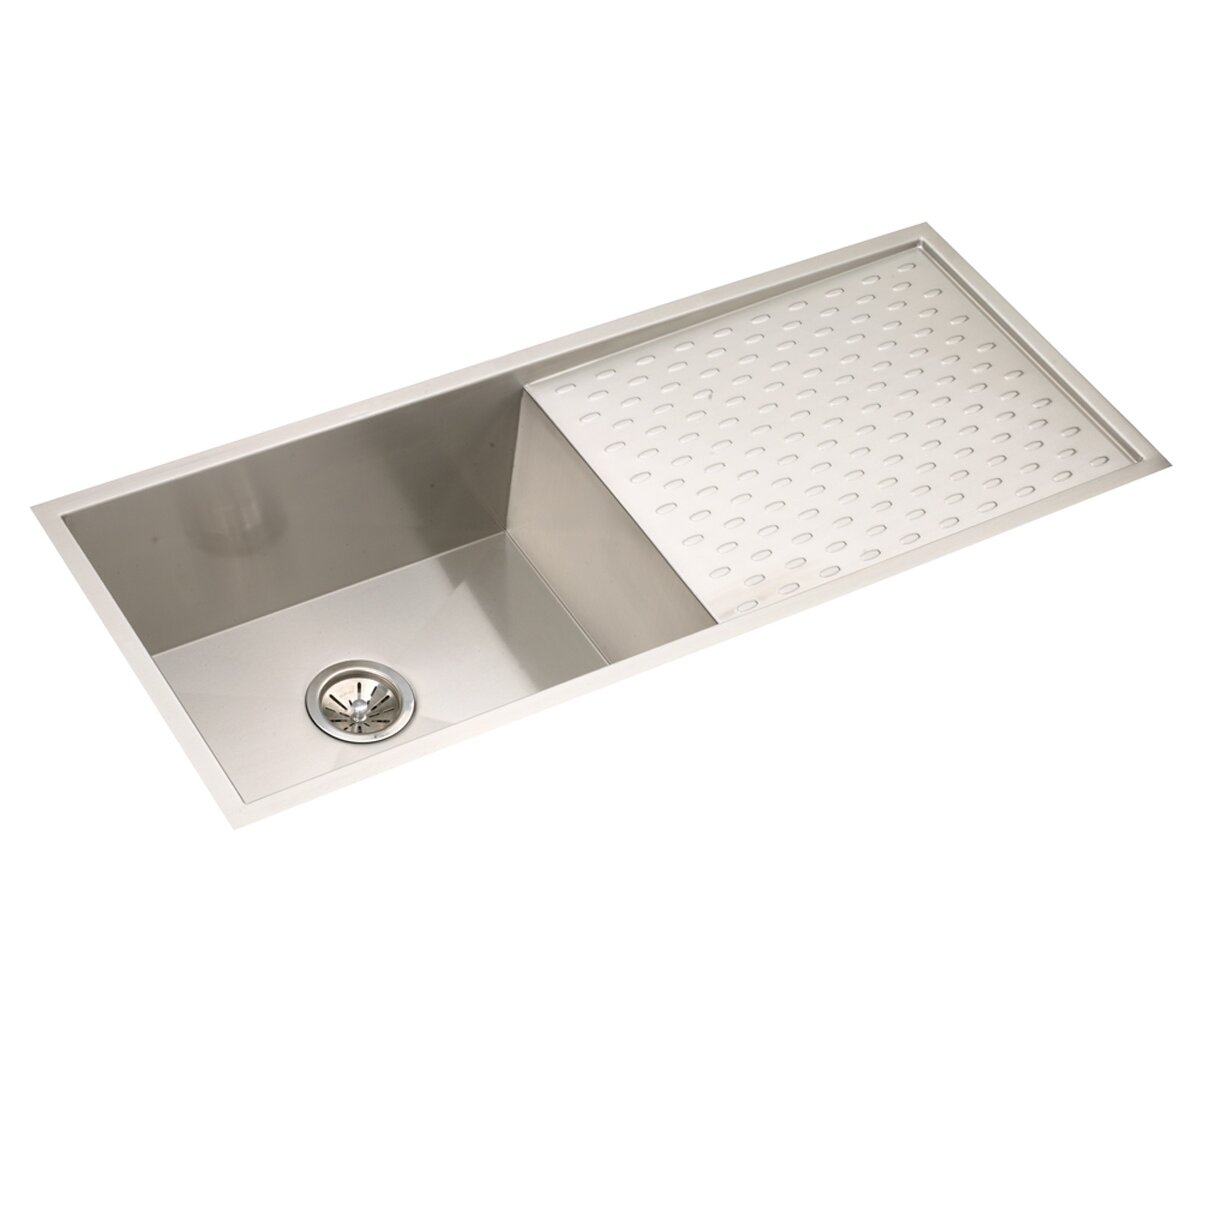 "Elkay Kitchen Sinks: Elkay Avado 43.5"" X 18.25"" Single Bowl Kitchen Sink"